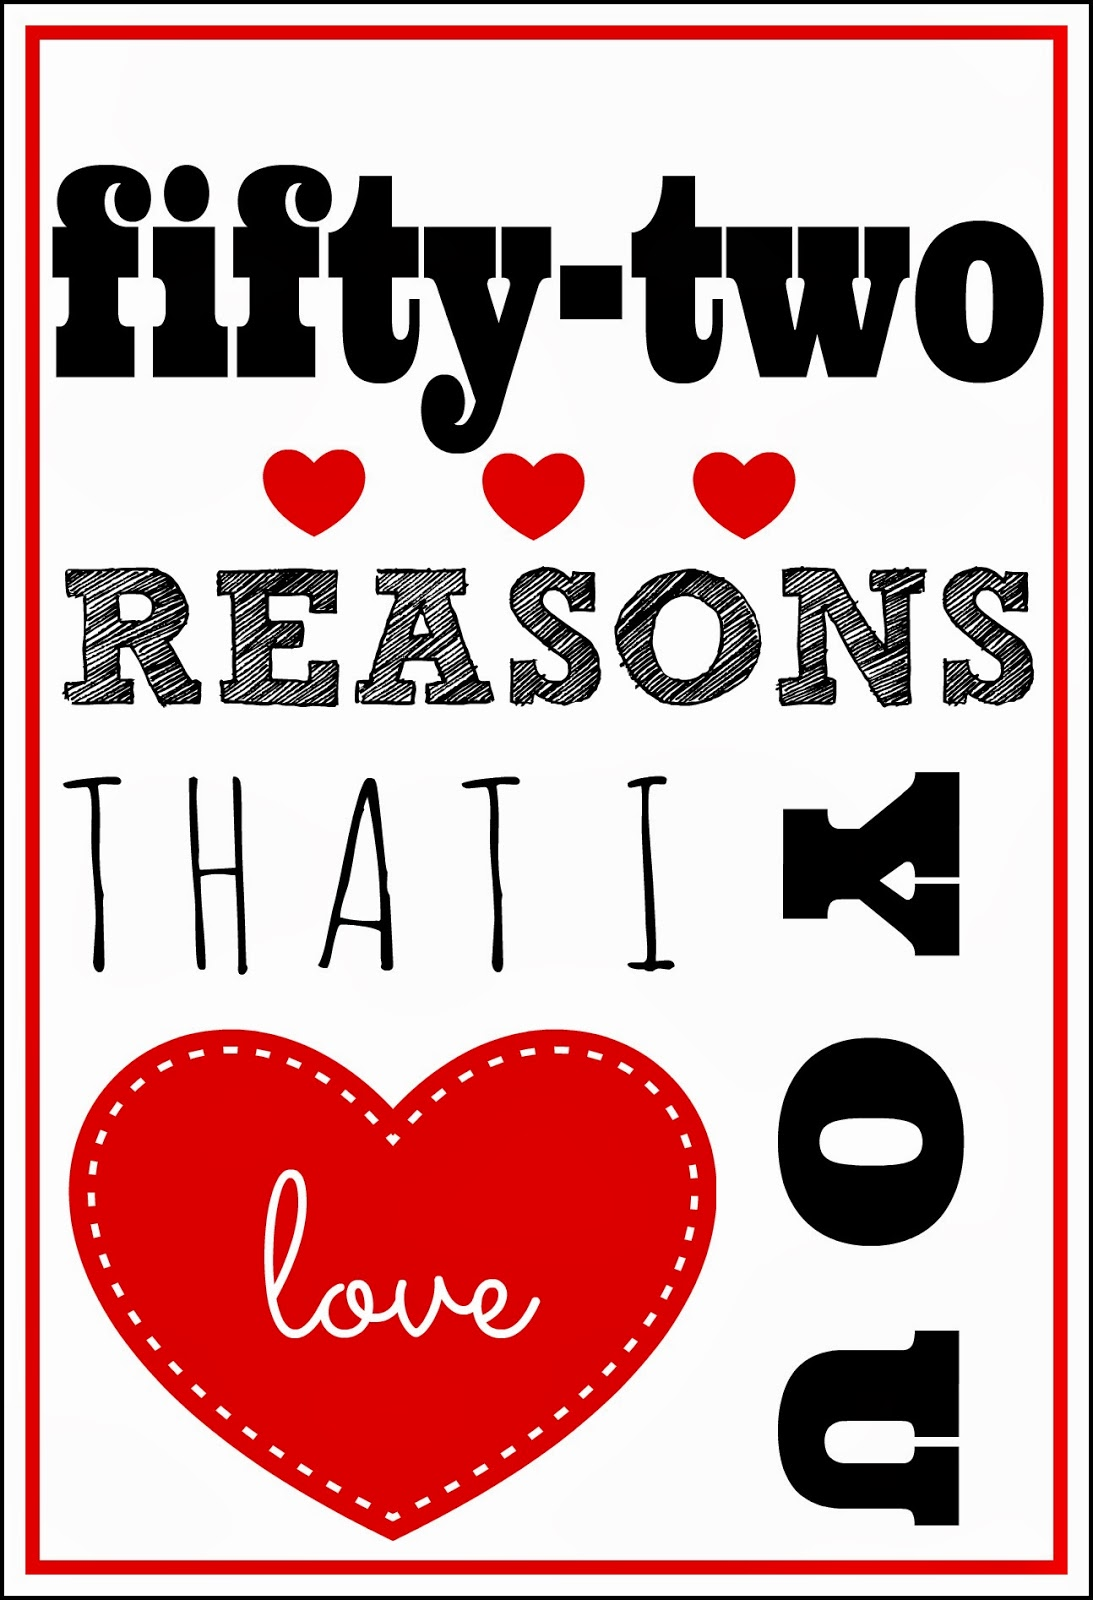 Larissa another day 52 reasons i love you printable a for 52 reasons i love you template free download